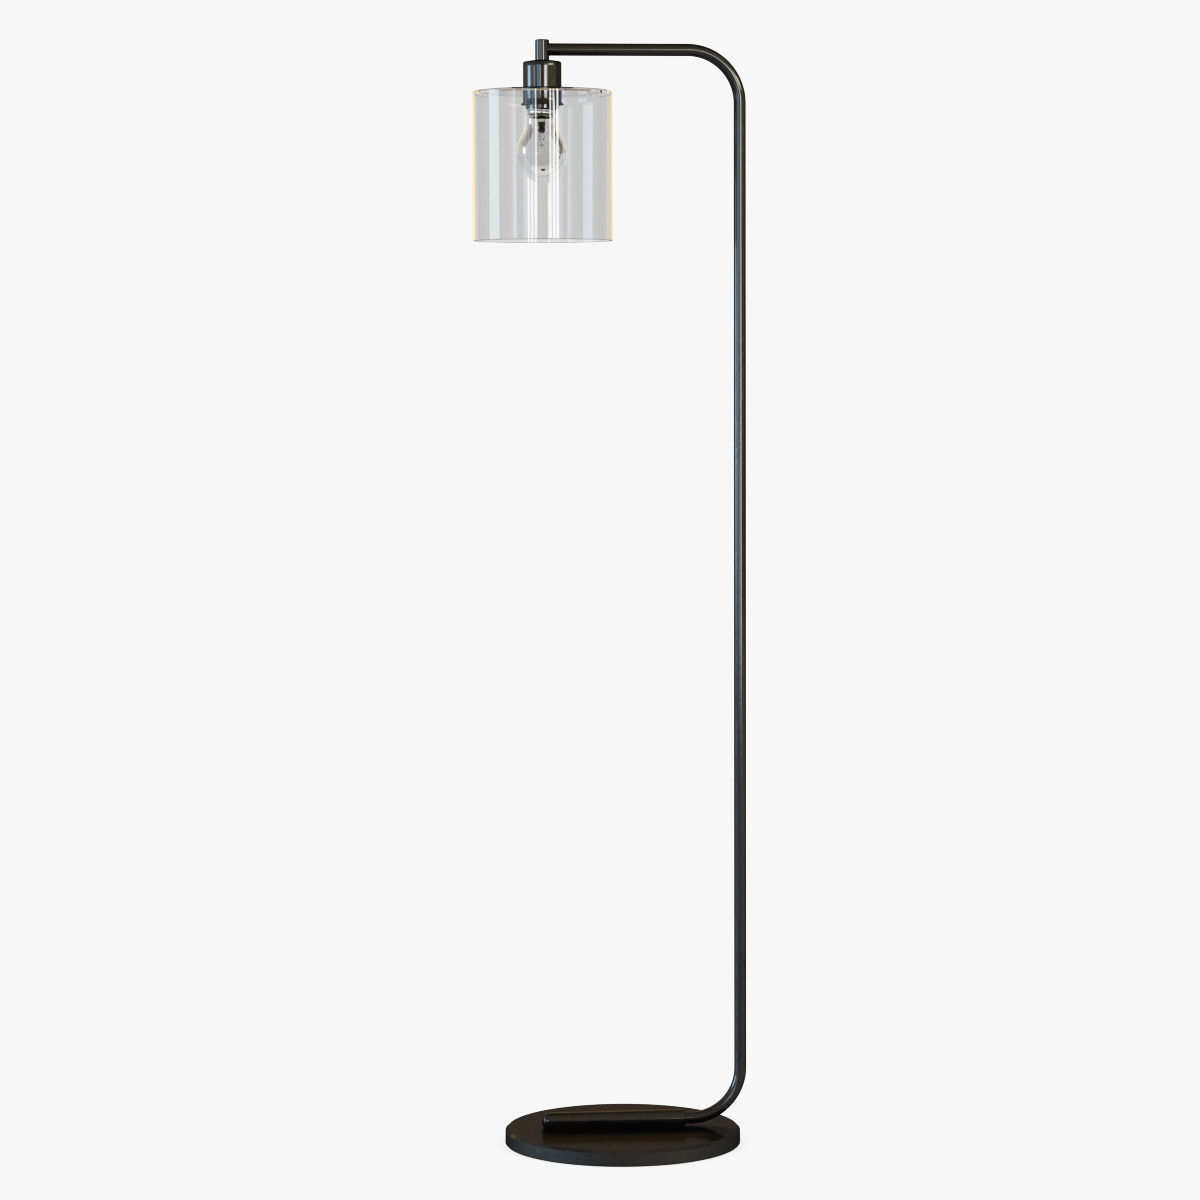 Spice up your space with west elm floor lamps warisan lighting spice up your space with west elm floor lamps aloadofball Gallery